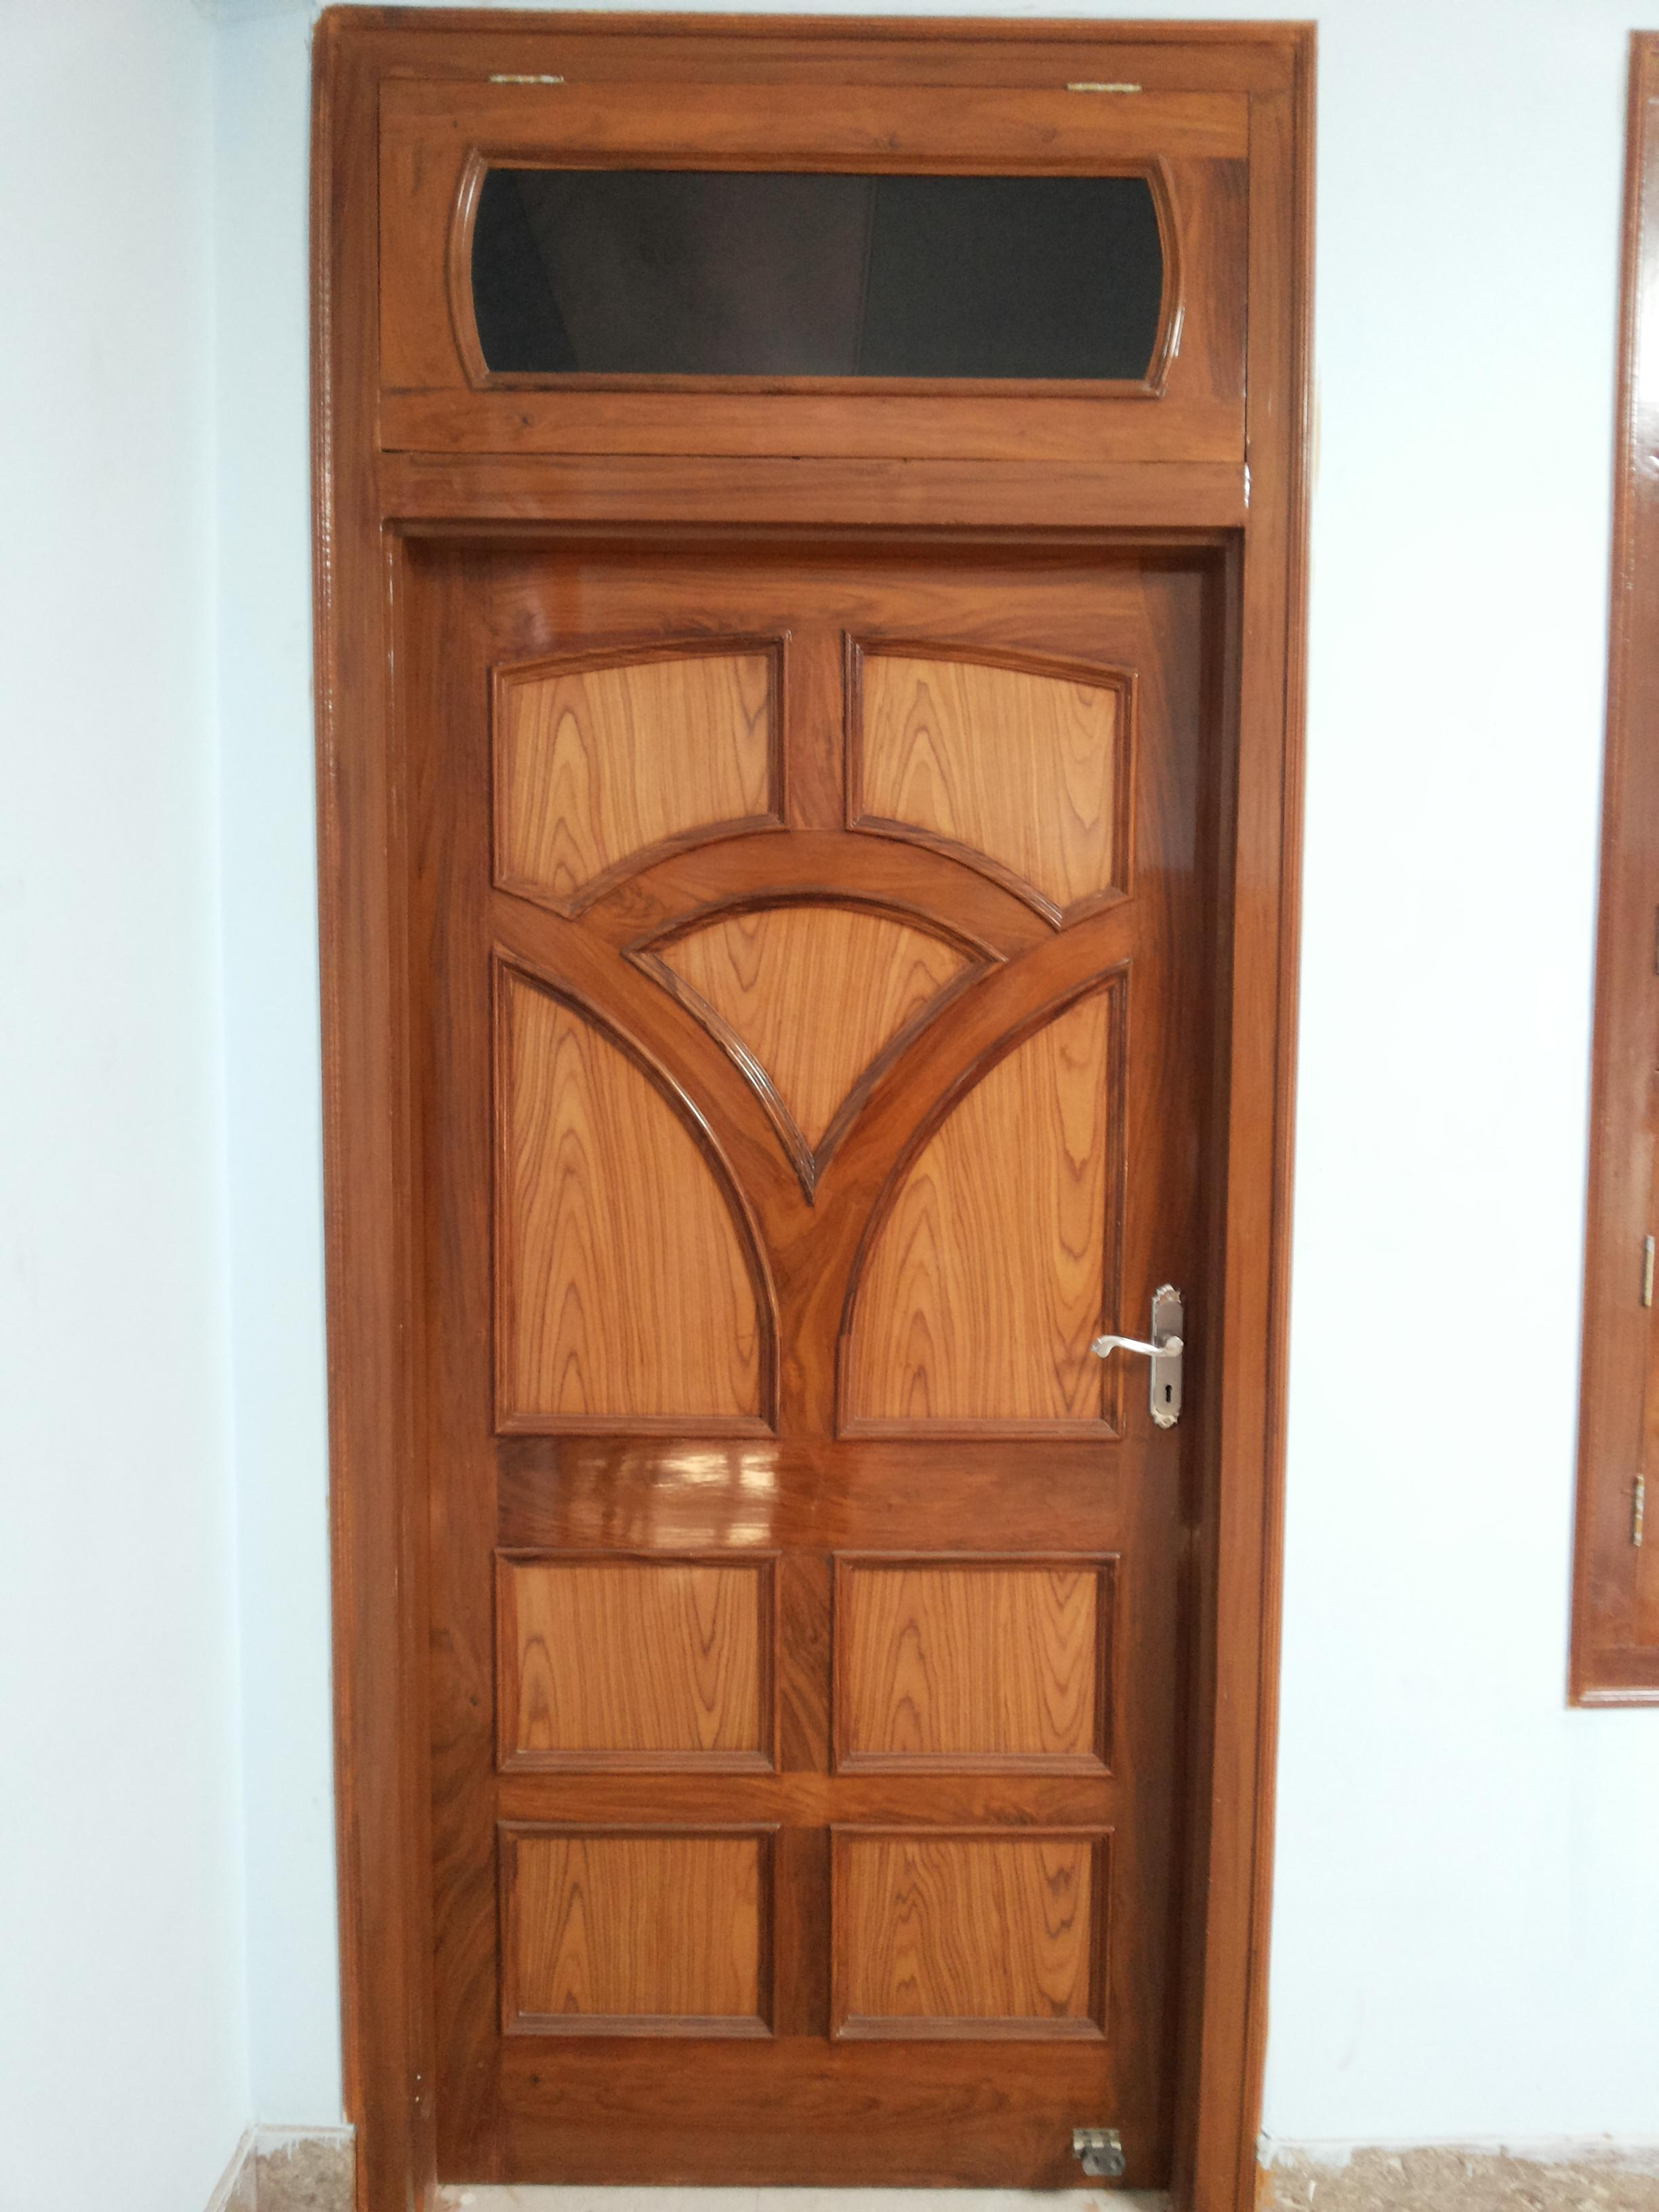 Single panel Interior Wood Door Design GharExpert : 422013112259 from www.gharexpert.com size 2448 x 3264 jpeg 490kB